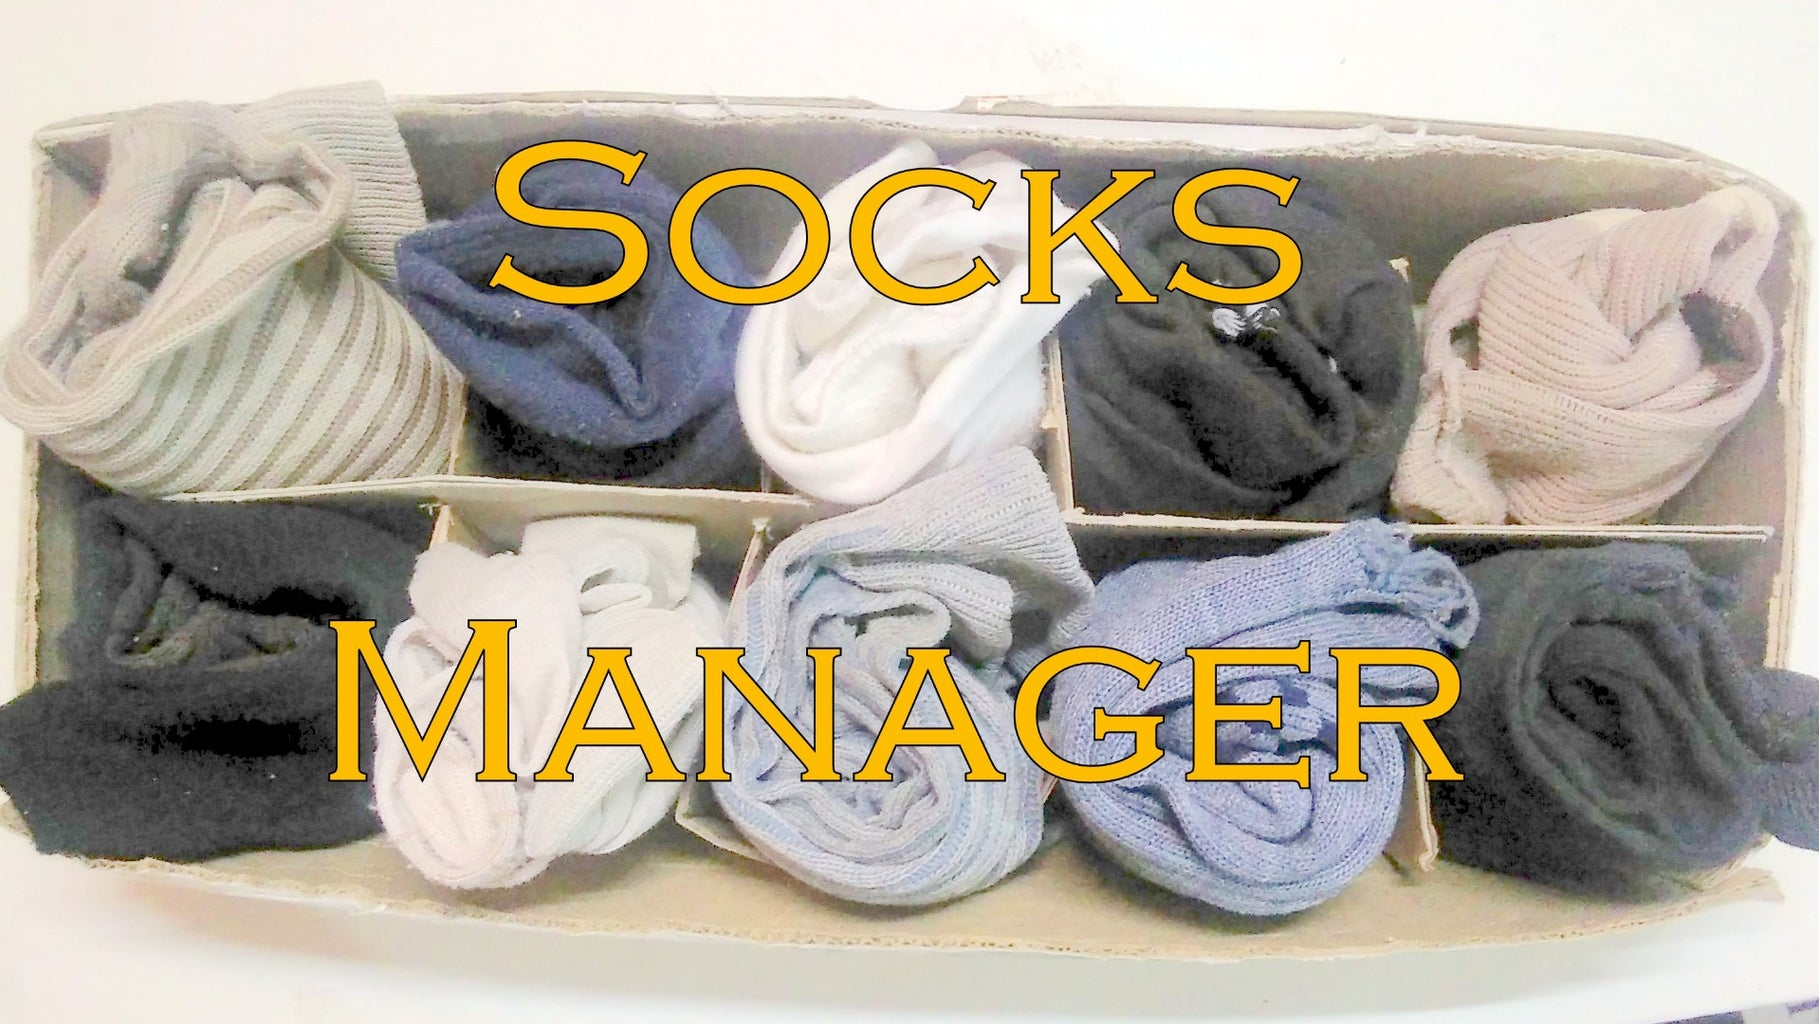 How to Manage Your Socks (Socks Manager)